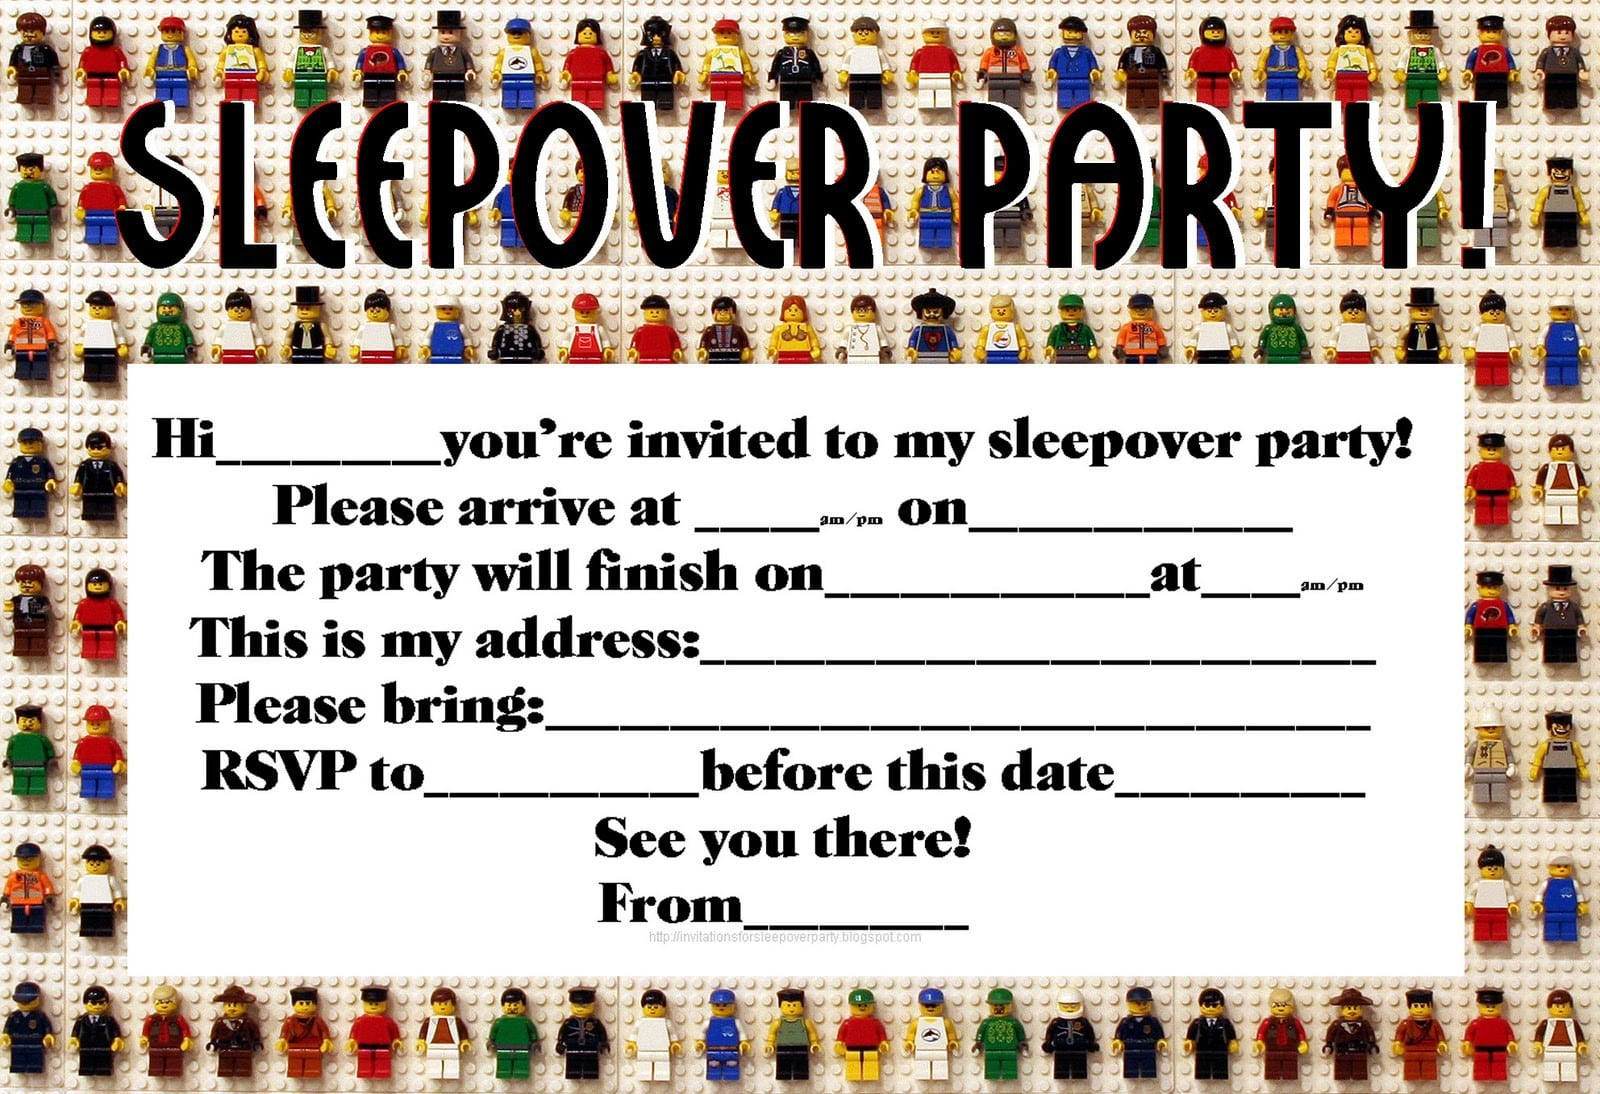 invitations for sleepover party allkdramas.tk